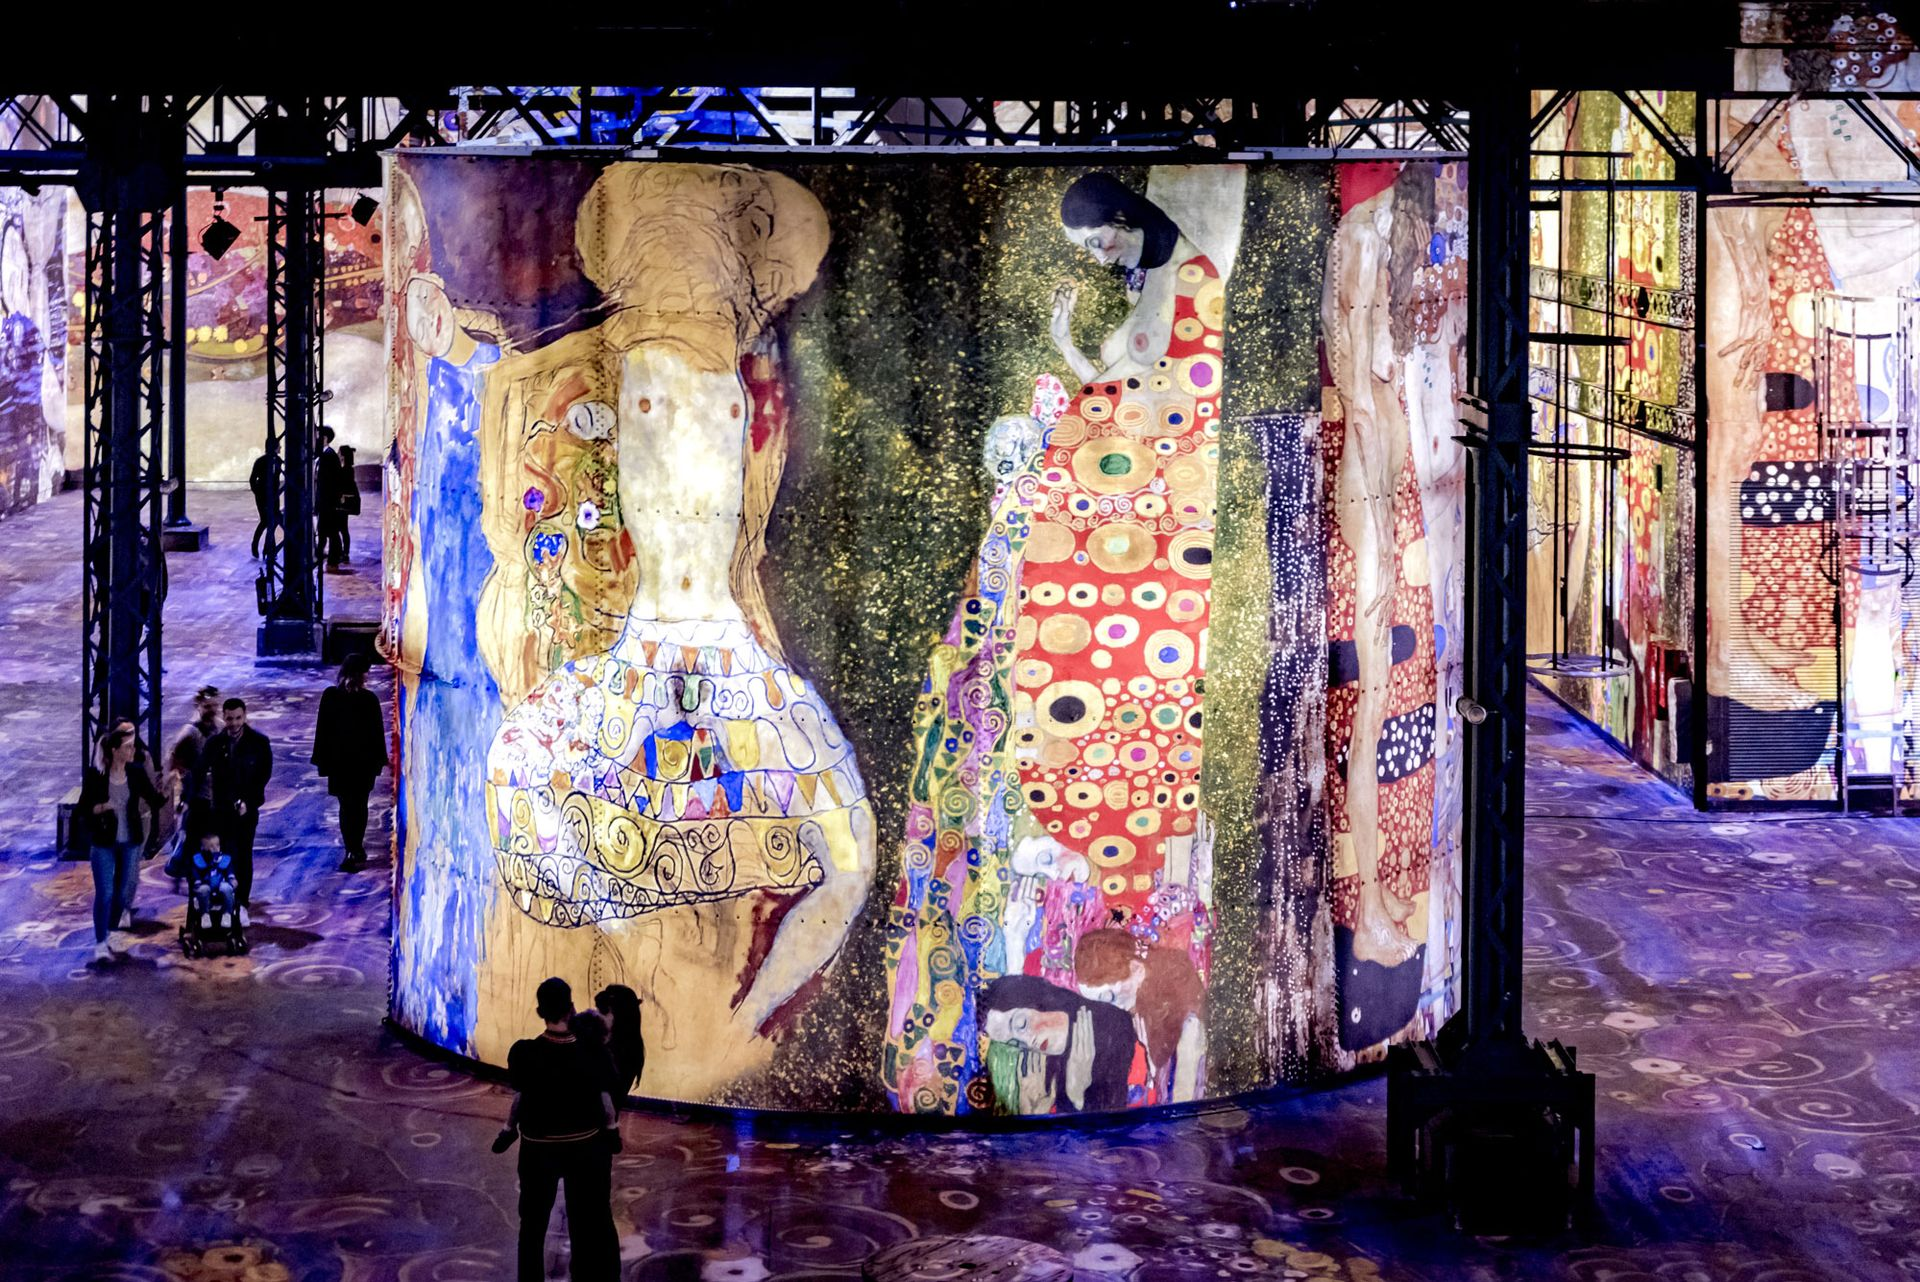 More than 1.2 million people experienced the 30-minute immersive exhibition of Gustav Klimt's paintings at the Atelier des Lumières in Paris © Culturespaces/E. Spiller